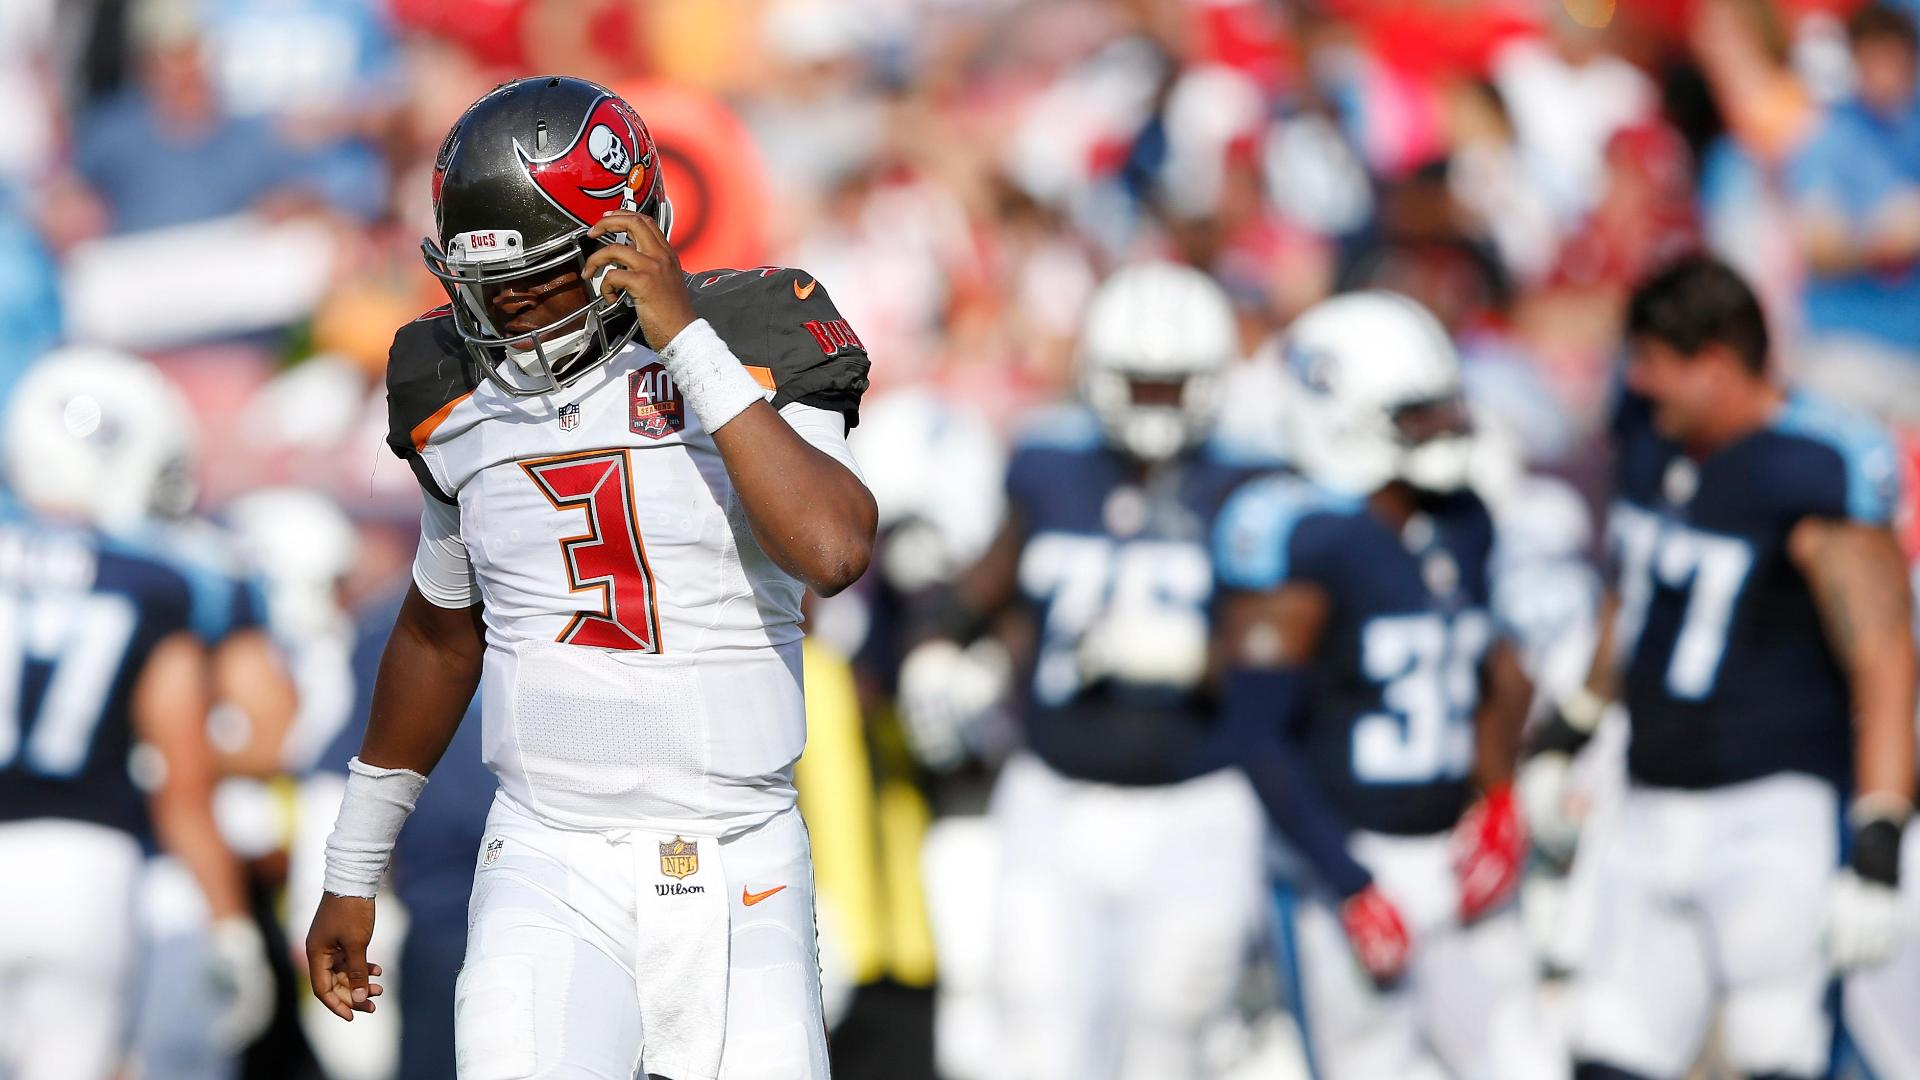 http://a.espncdn.com/media/motion/2015/0914/dm_150913_Winston_tosses_pick_six92/dm_150913_Winston_tosses_pick_six92.jpg